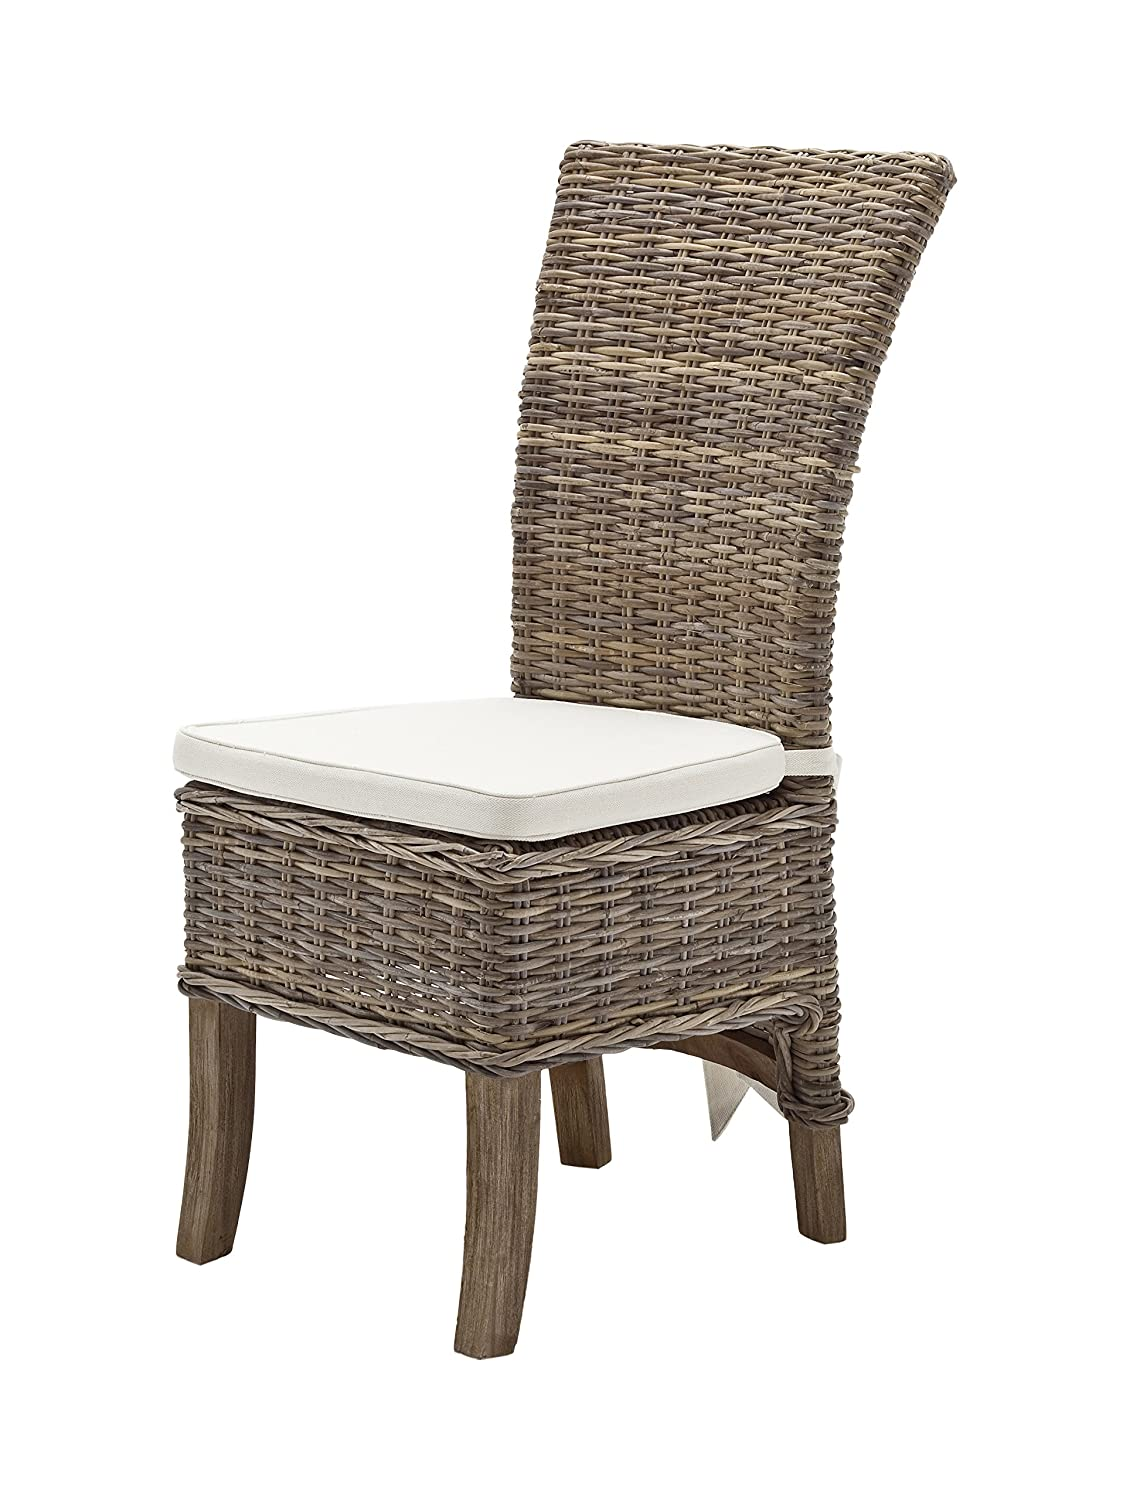 Nova solo salsa dining chair with cushion rattan grey set of 2 amazon co uk kitchen home